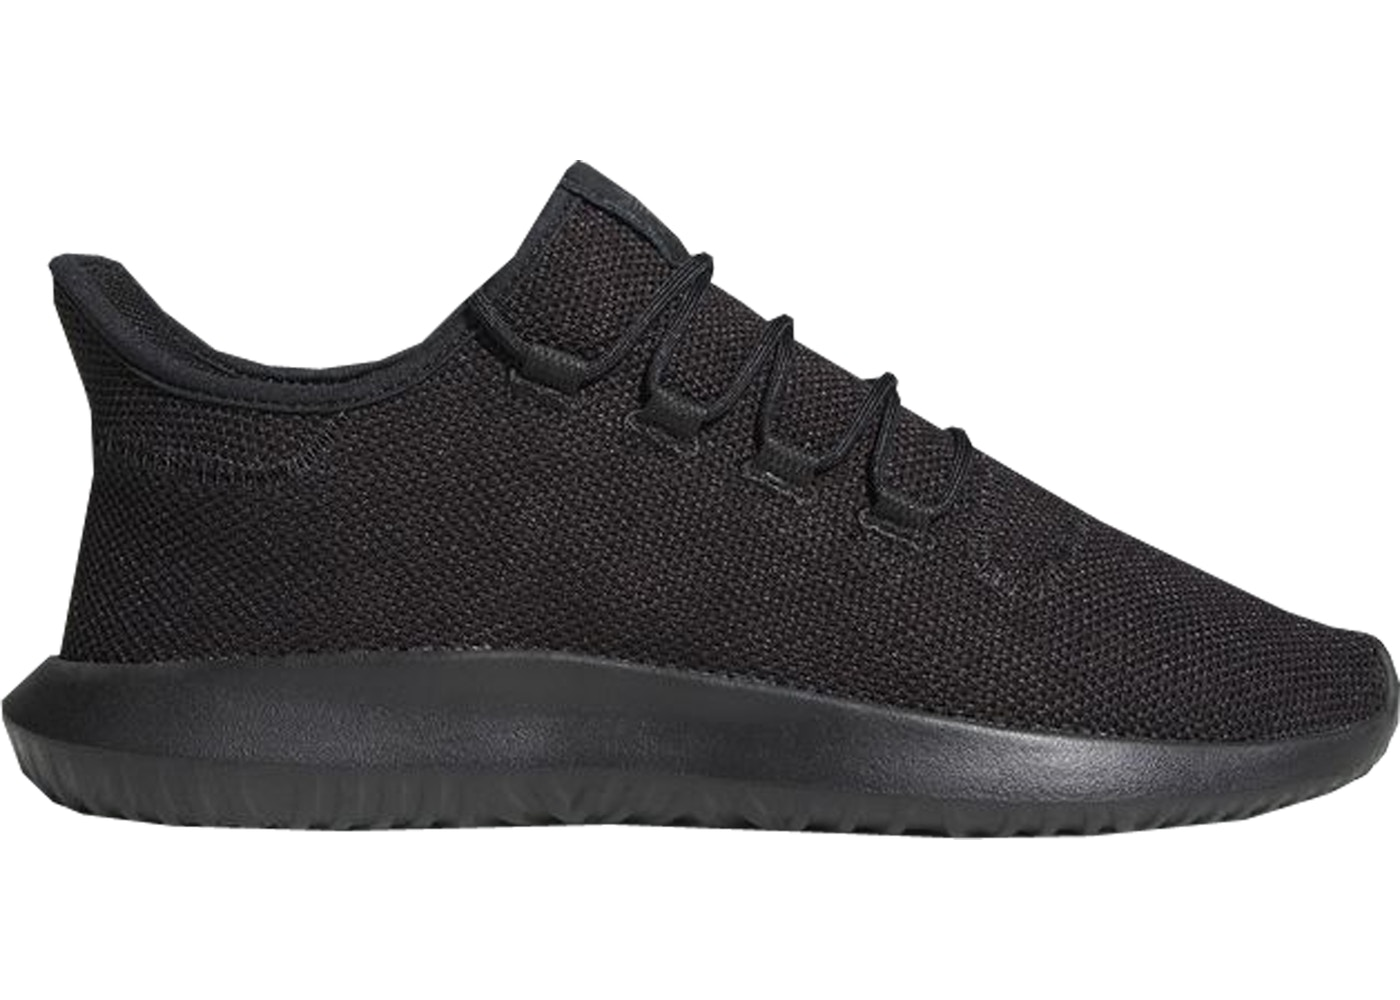 adidas Tubular Shadow Core Black - CG4562 30f566aed